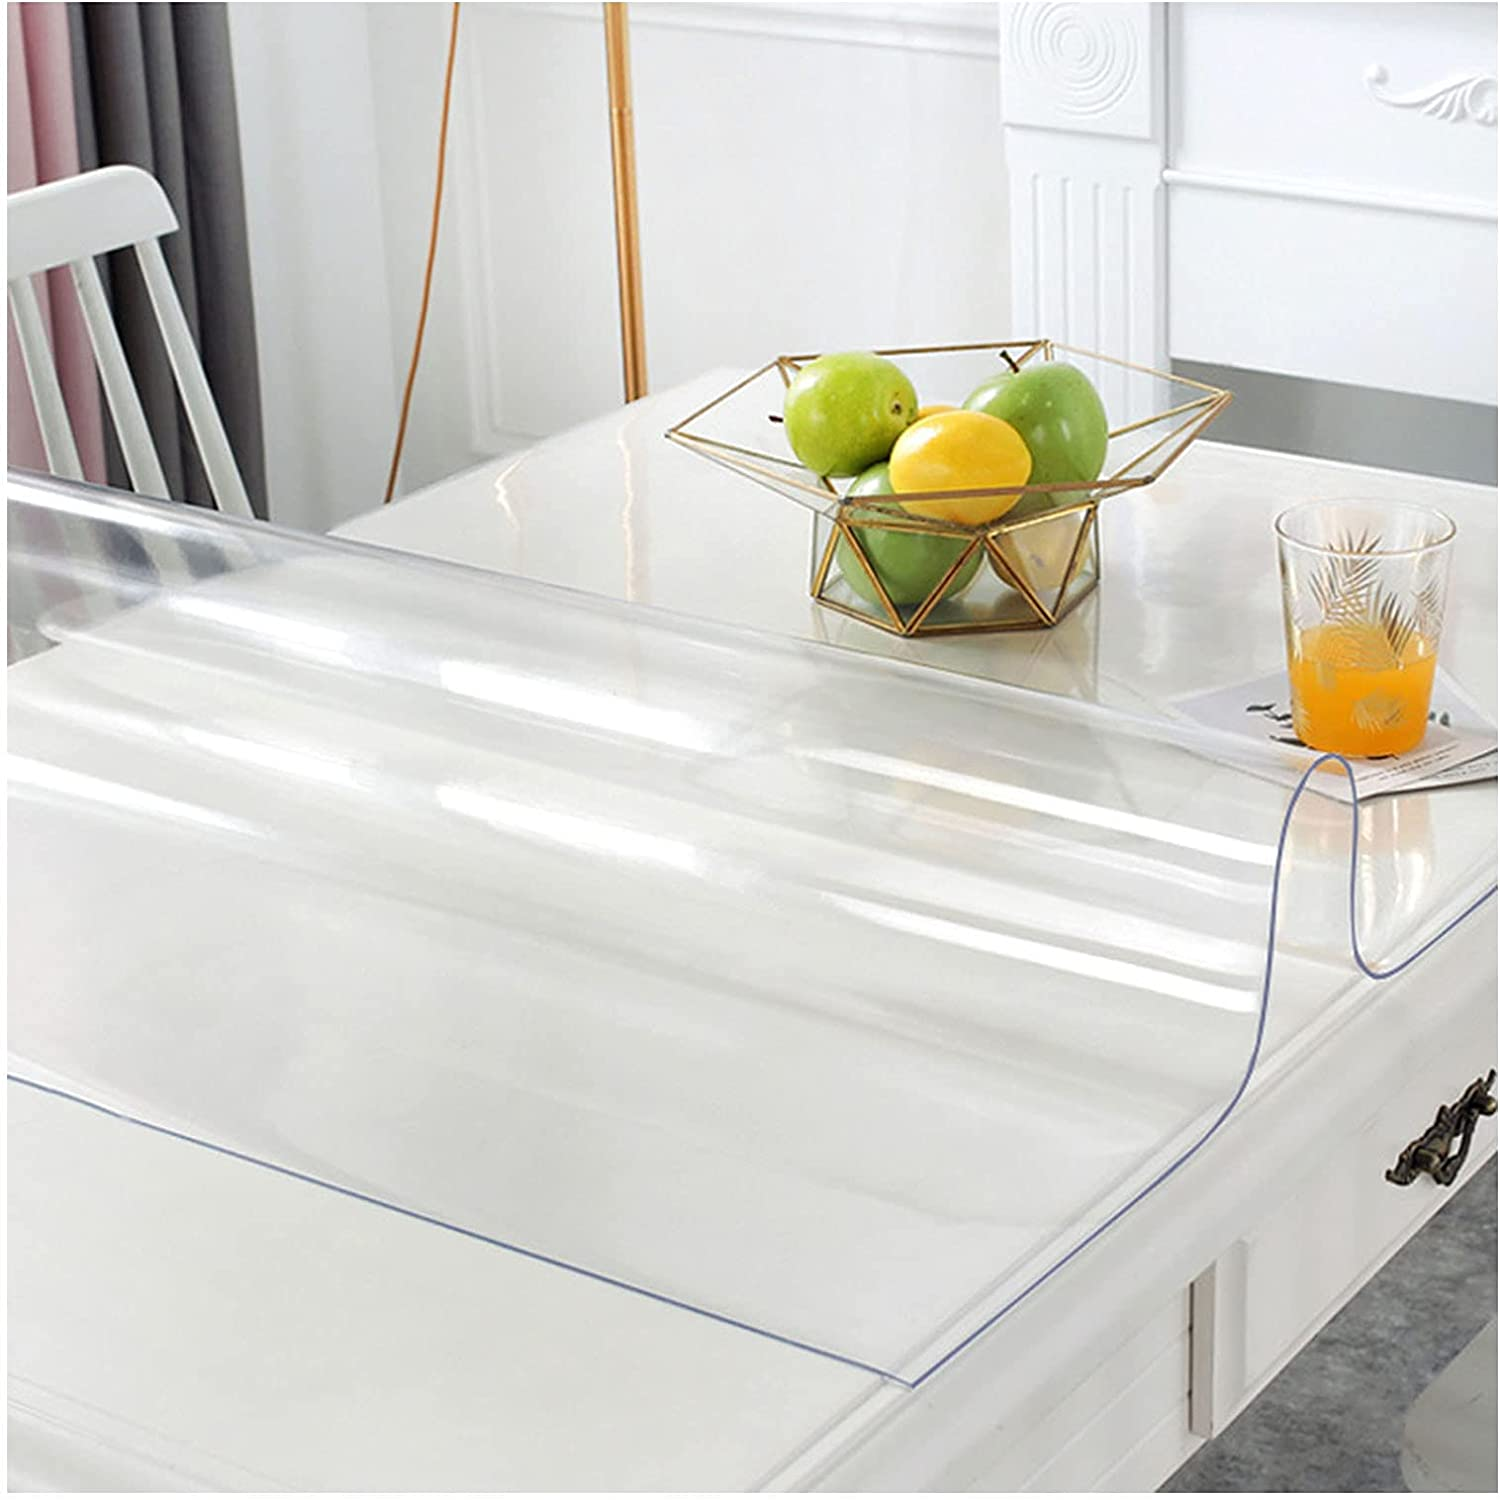 LKDF Waterproof Table Purchase Max 82% OFF Cloth Transparent Protector